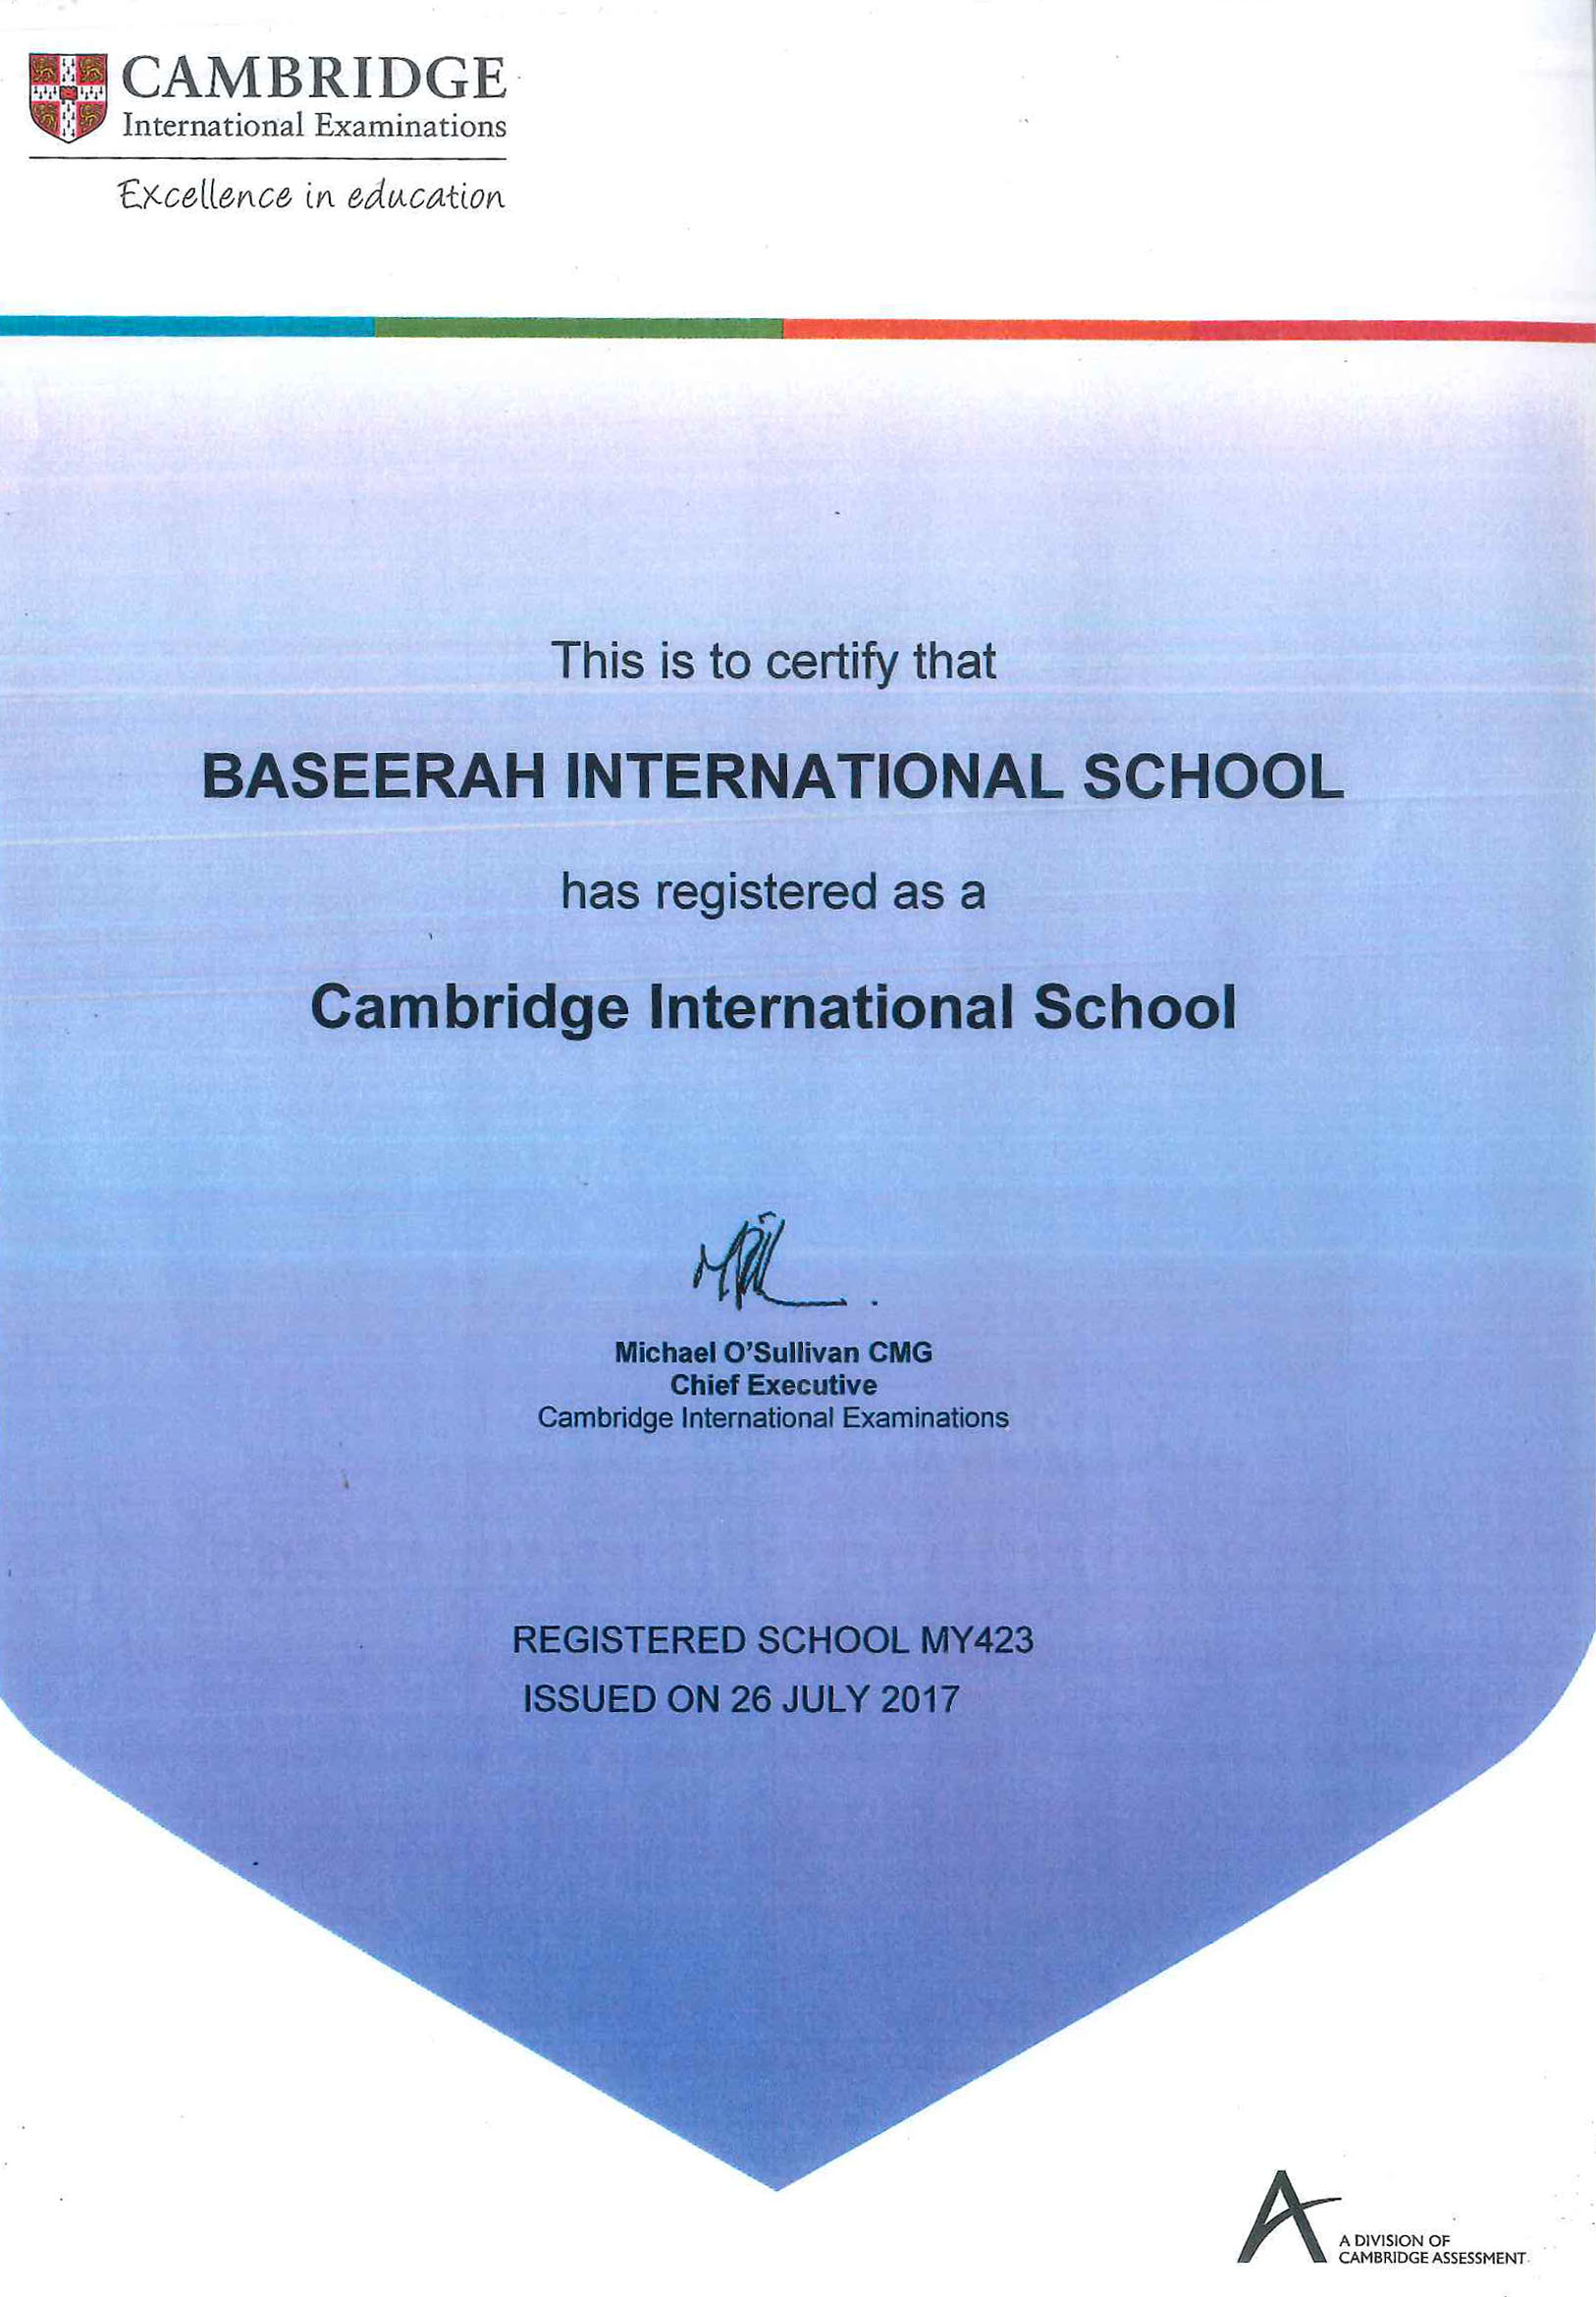 Registration Certificate as Cambridge International School